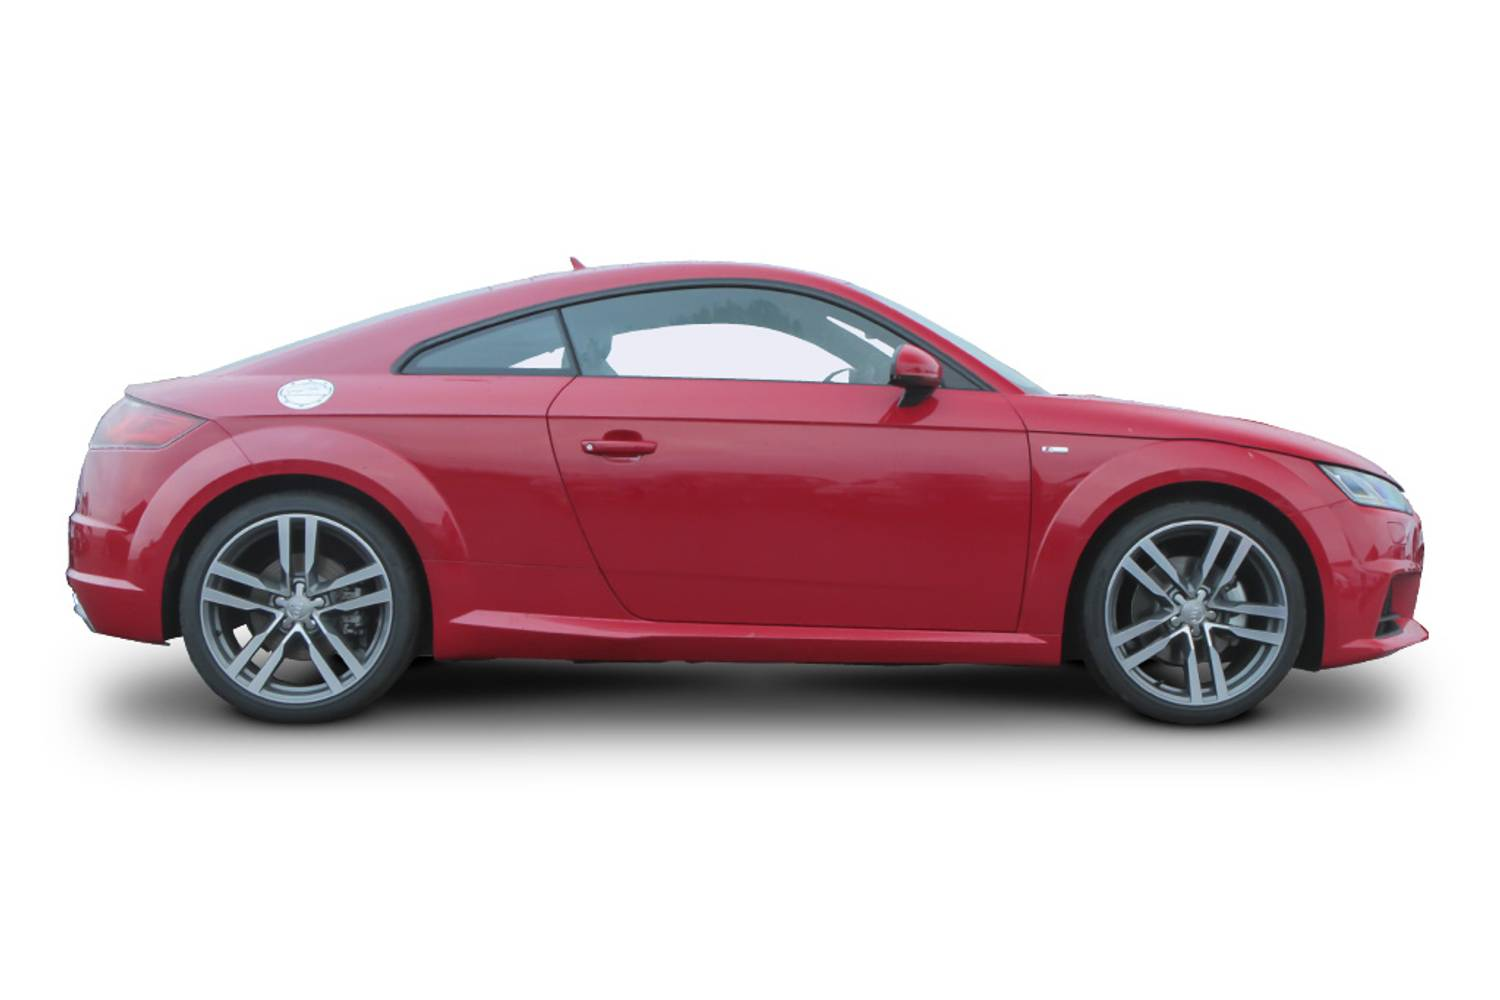 new audi tt coupe 2 0t fsi quattro s line 2 door s tronic 2014 for sale. Black Bedroom Furniture Sets. Home Design Ideas